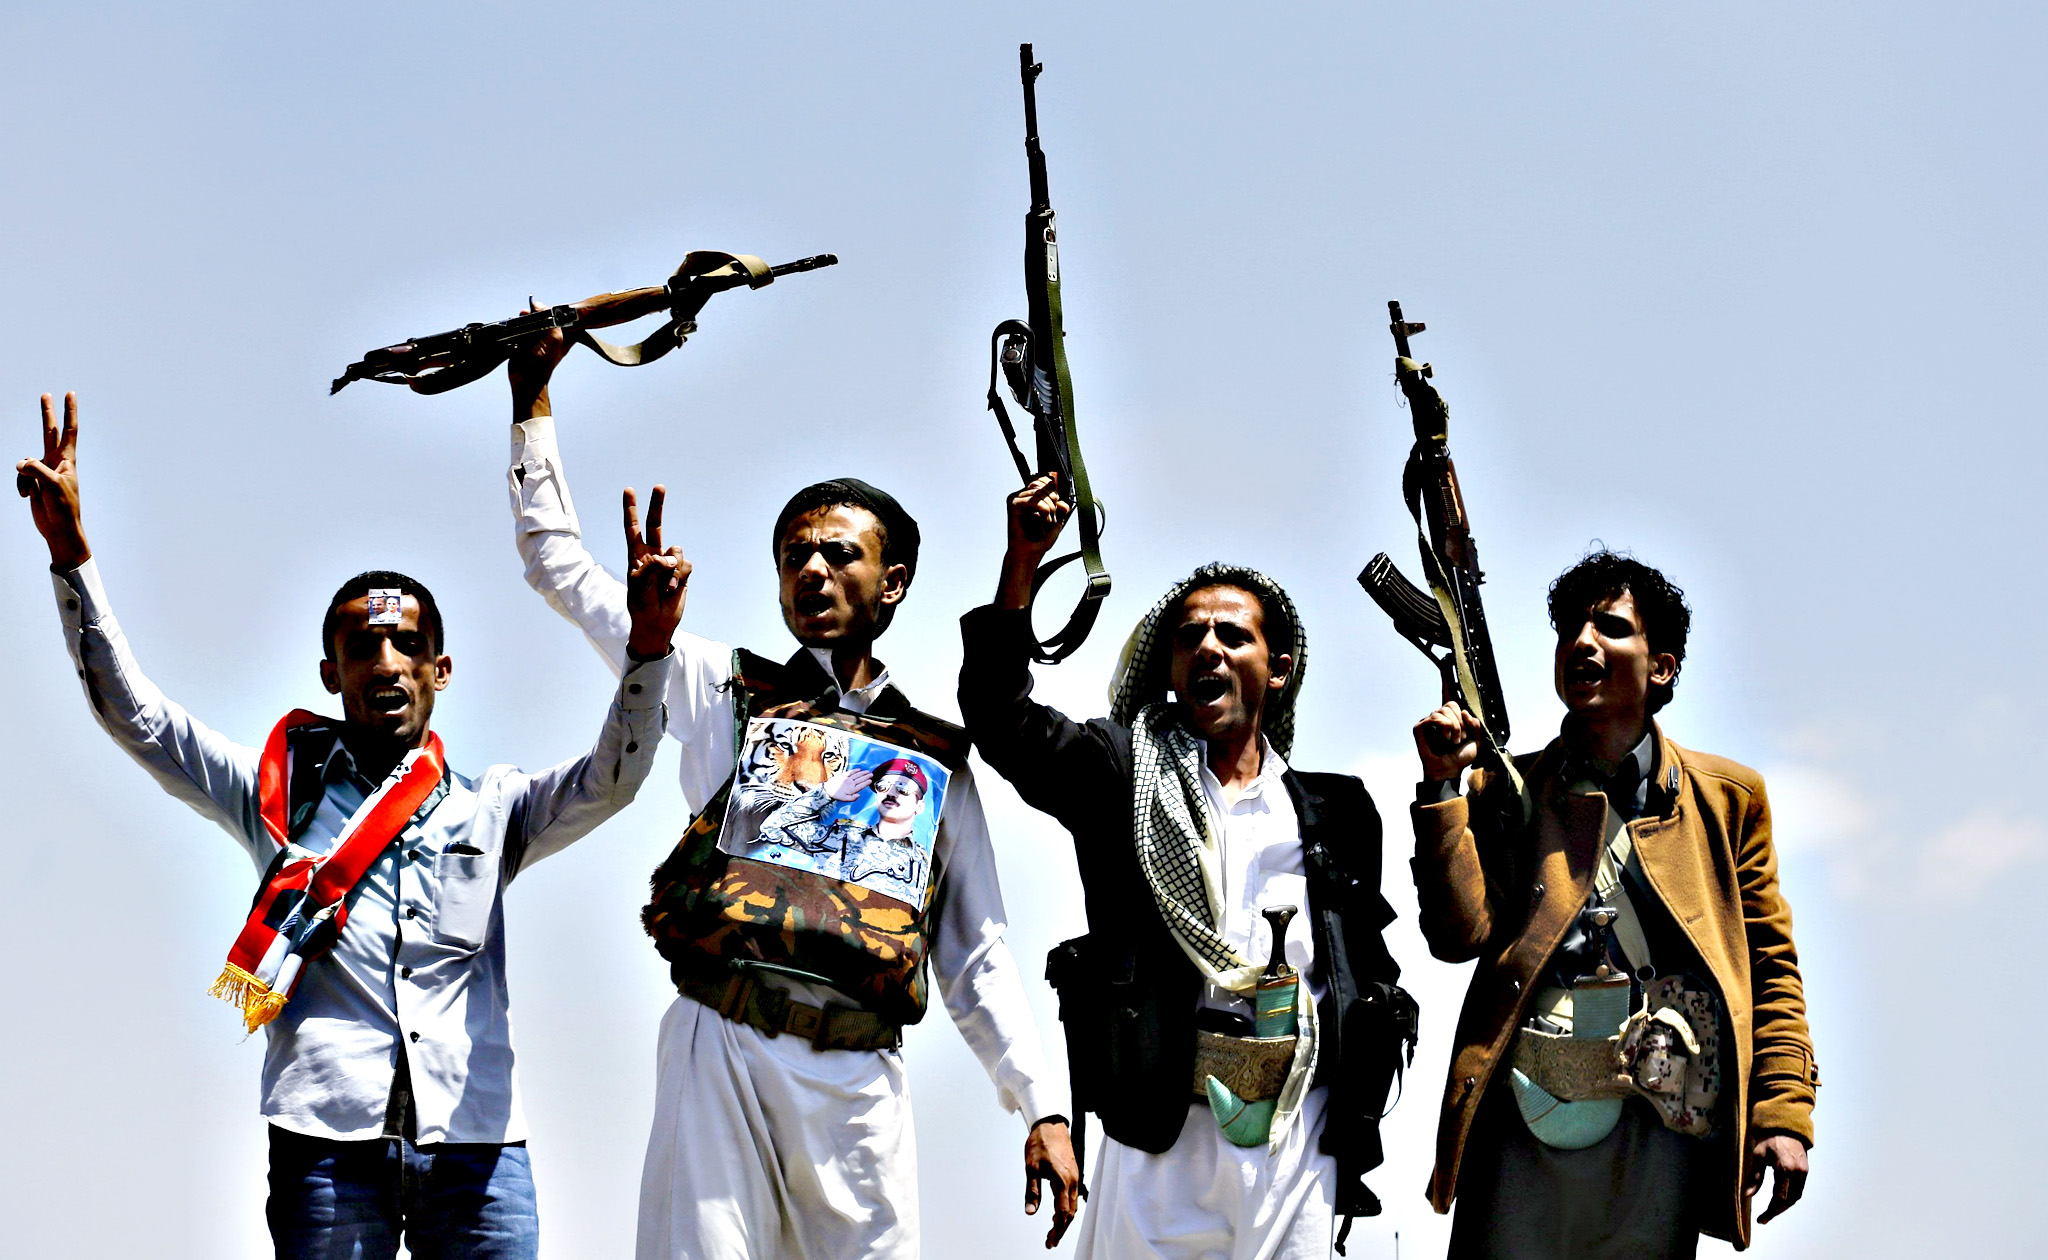 Supporters of Ahmed Ali Abdullah Saleh, the son of Yemen's former President Ali Abdullah Saleh, raise their rifles as they demonstrate in Sanaa, March 10, 2015. The supporters were demanding for presidential elections to be held and for Ahmed Ali Abdullah Saleh to run for presidency.